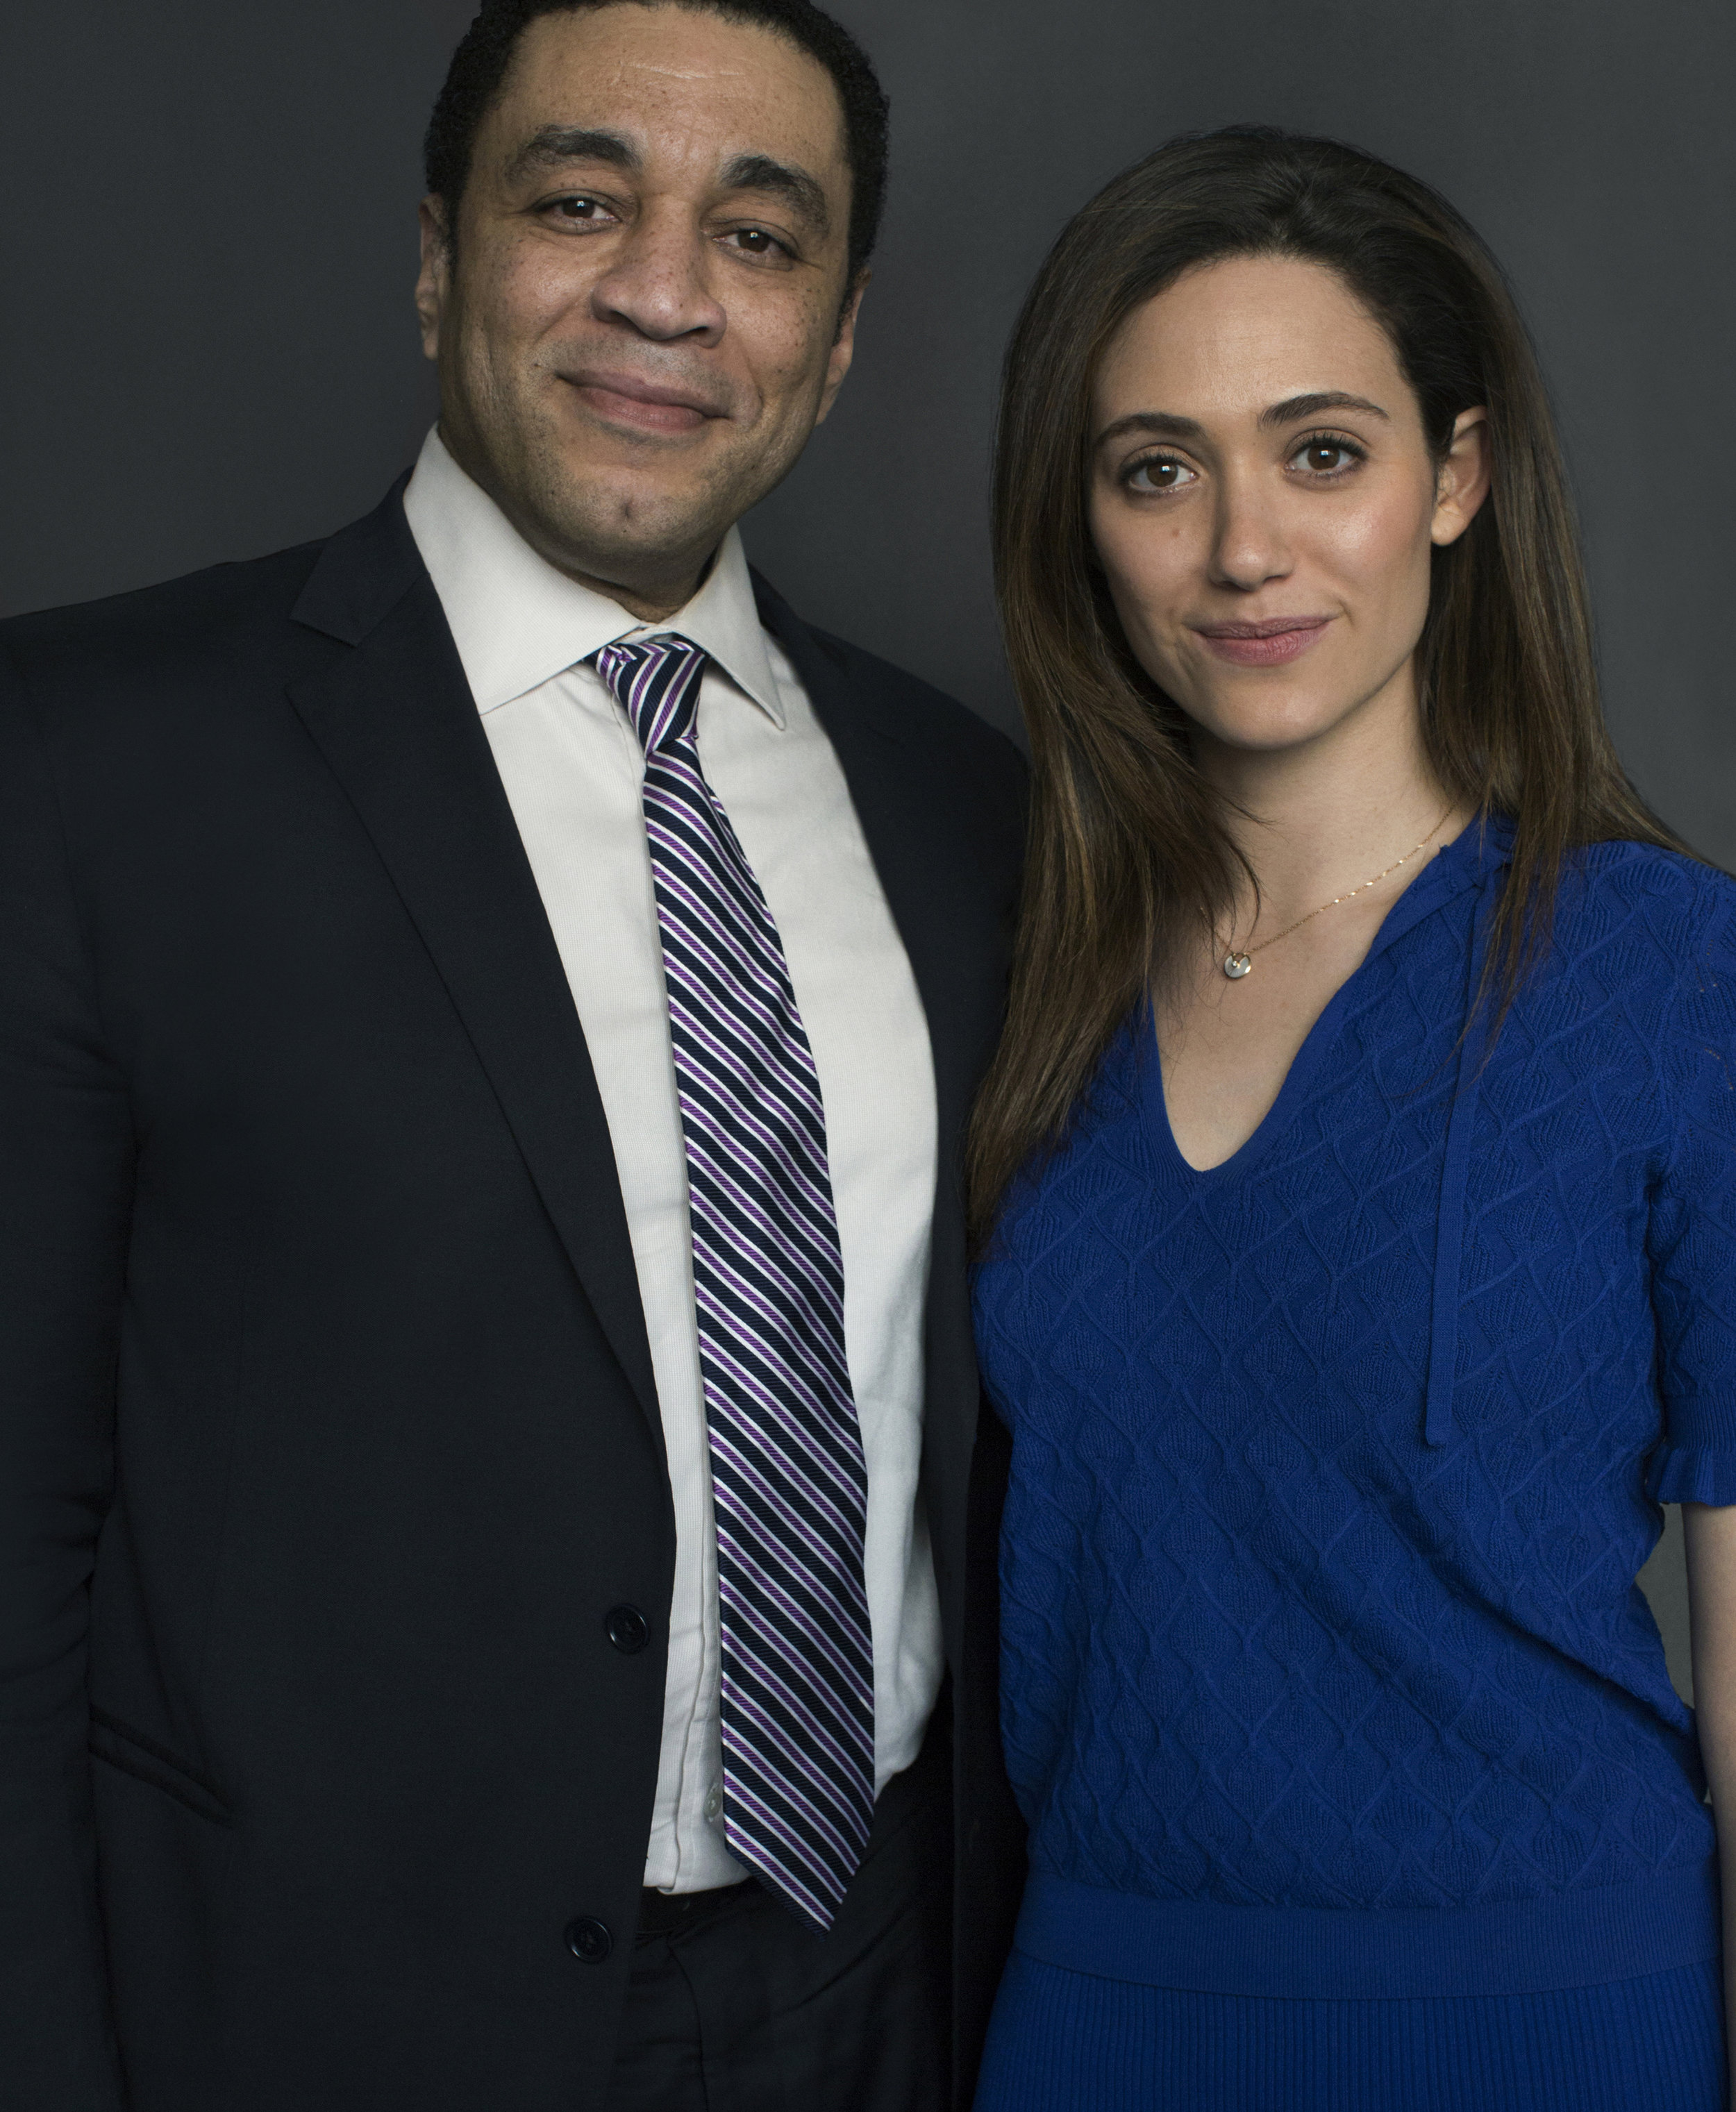 Hary Lenix & Emmy Rossum /  ITS harassment campaign